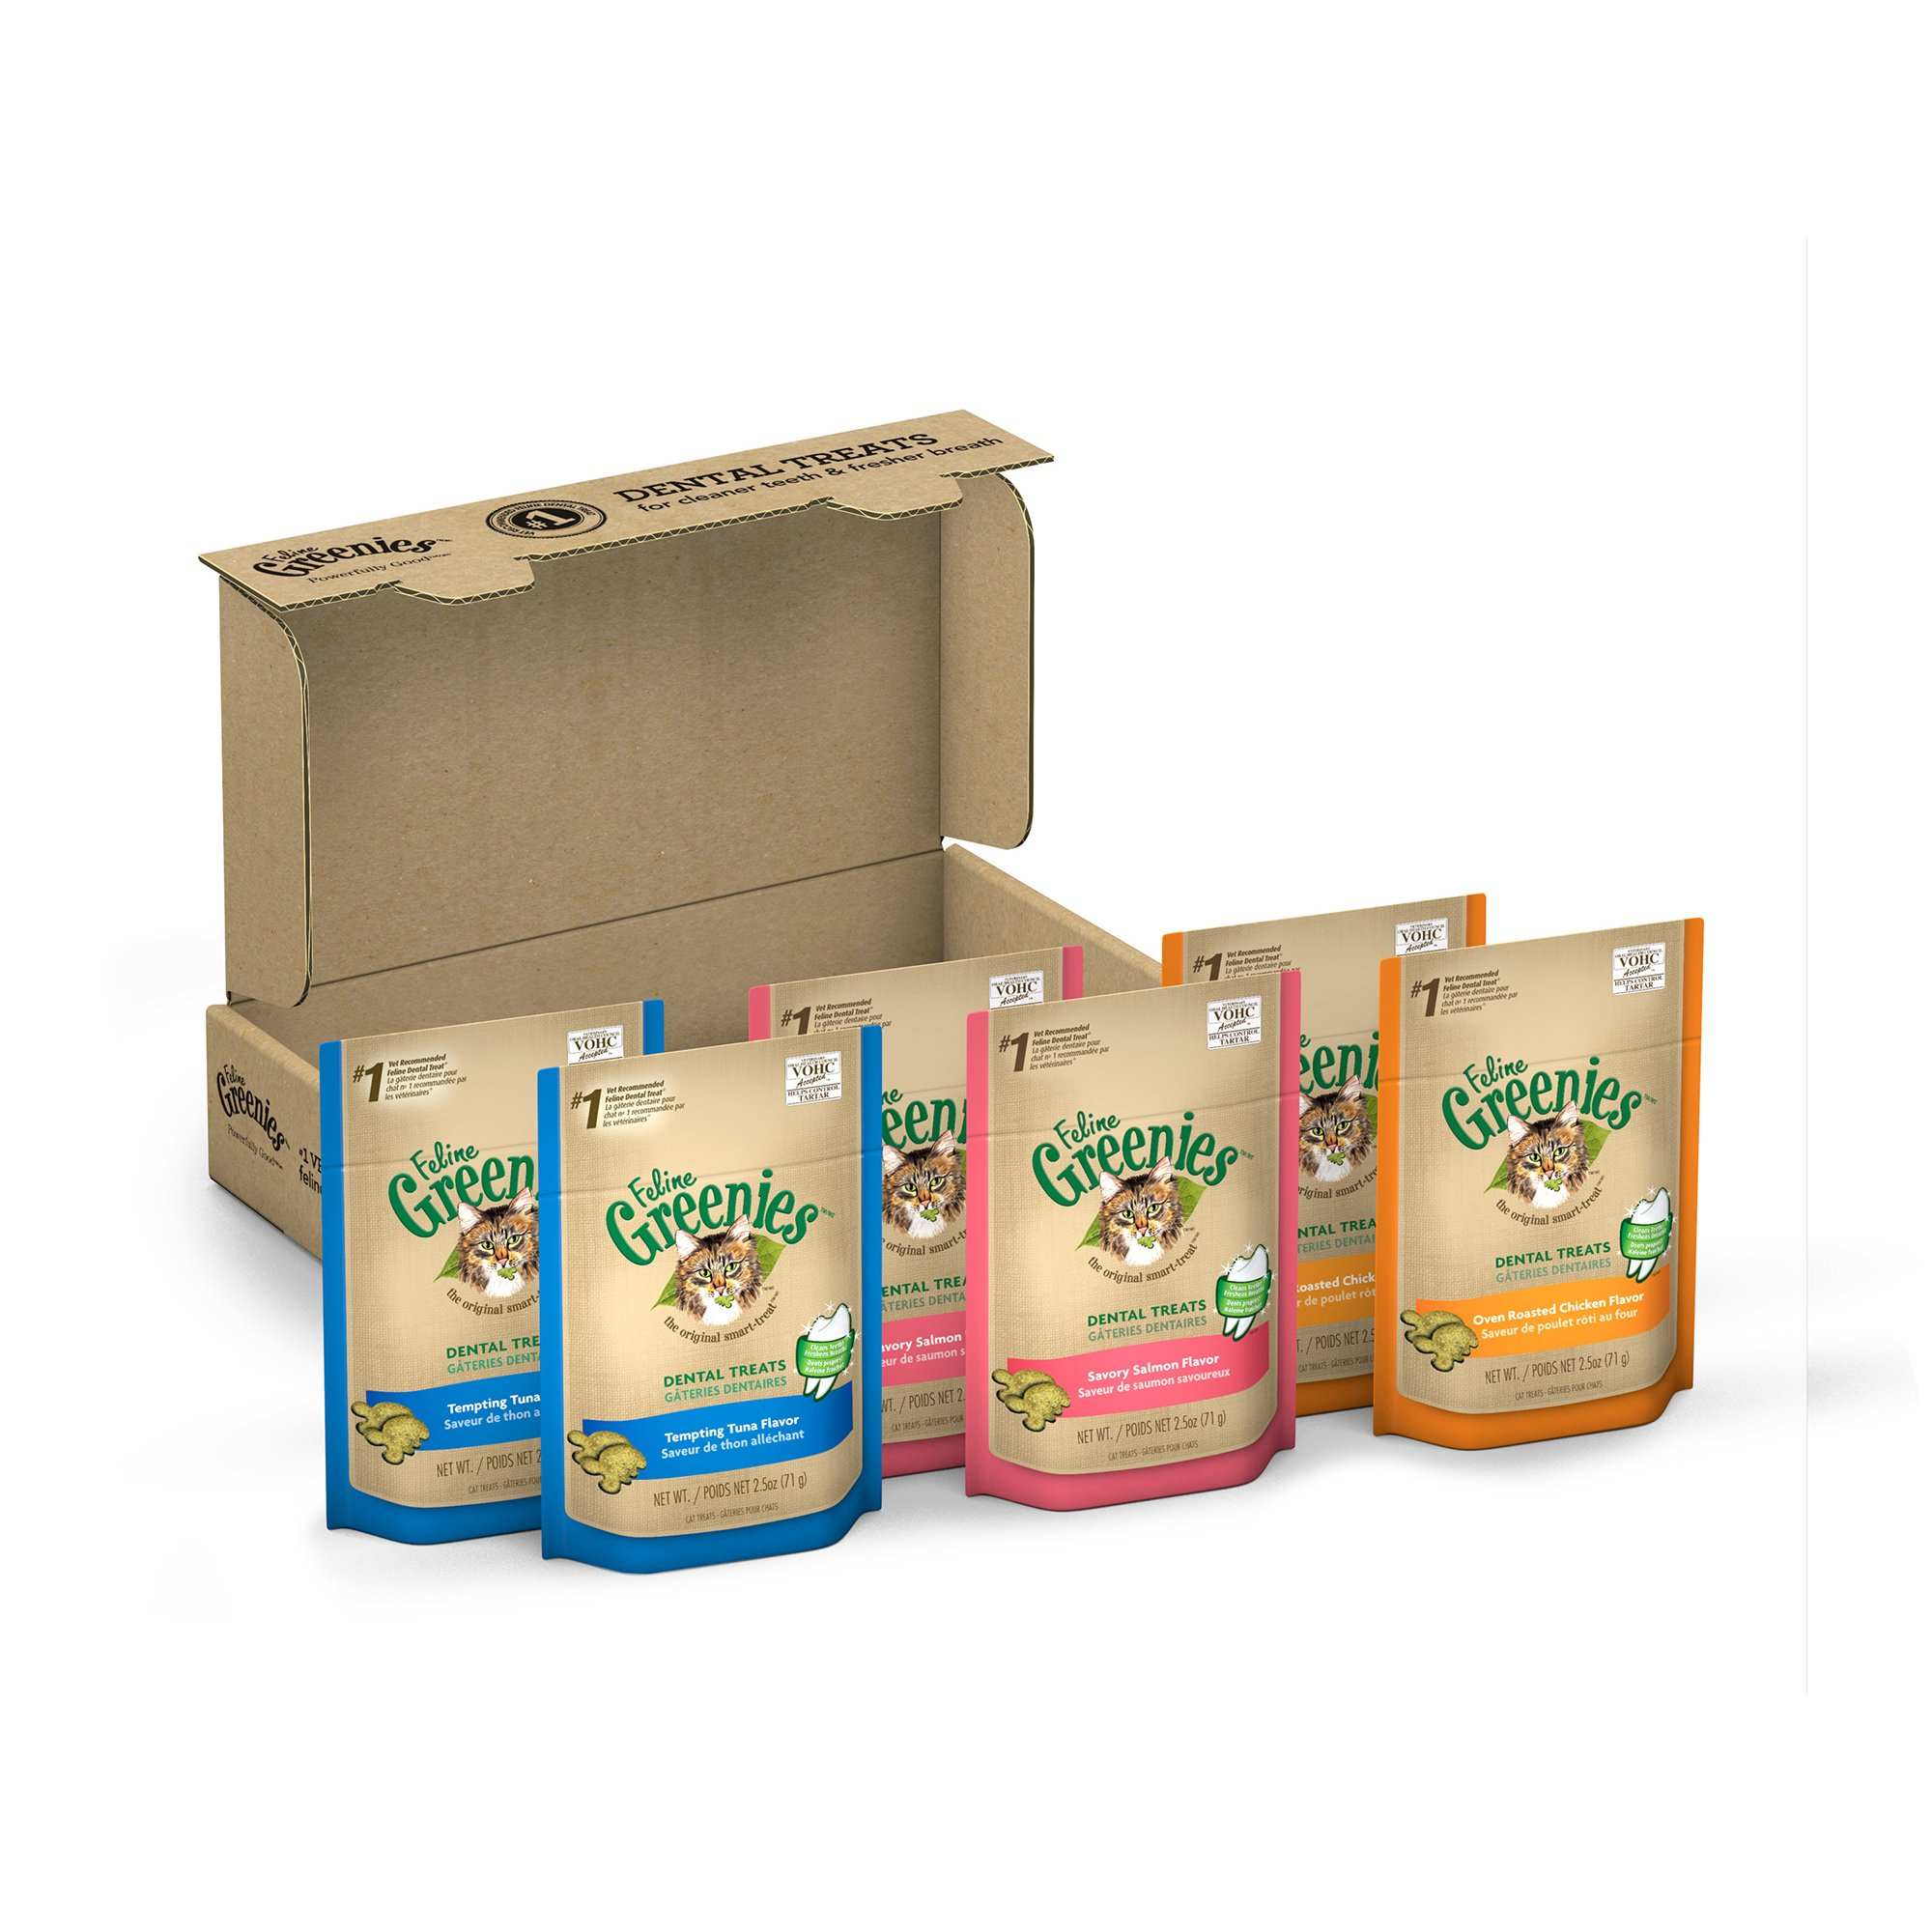 Greenies FELINE 3-Flavor Variety Pack Dental Treats for Cats 15 Ounces (Pack of 6)